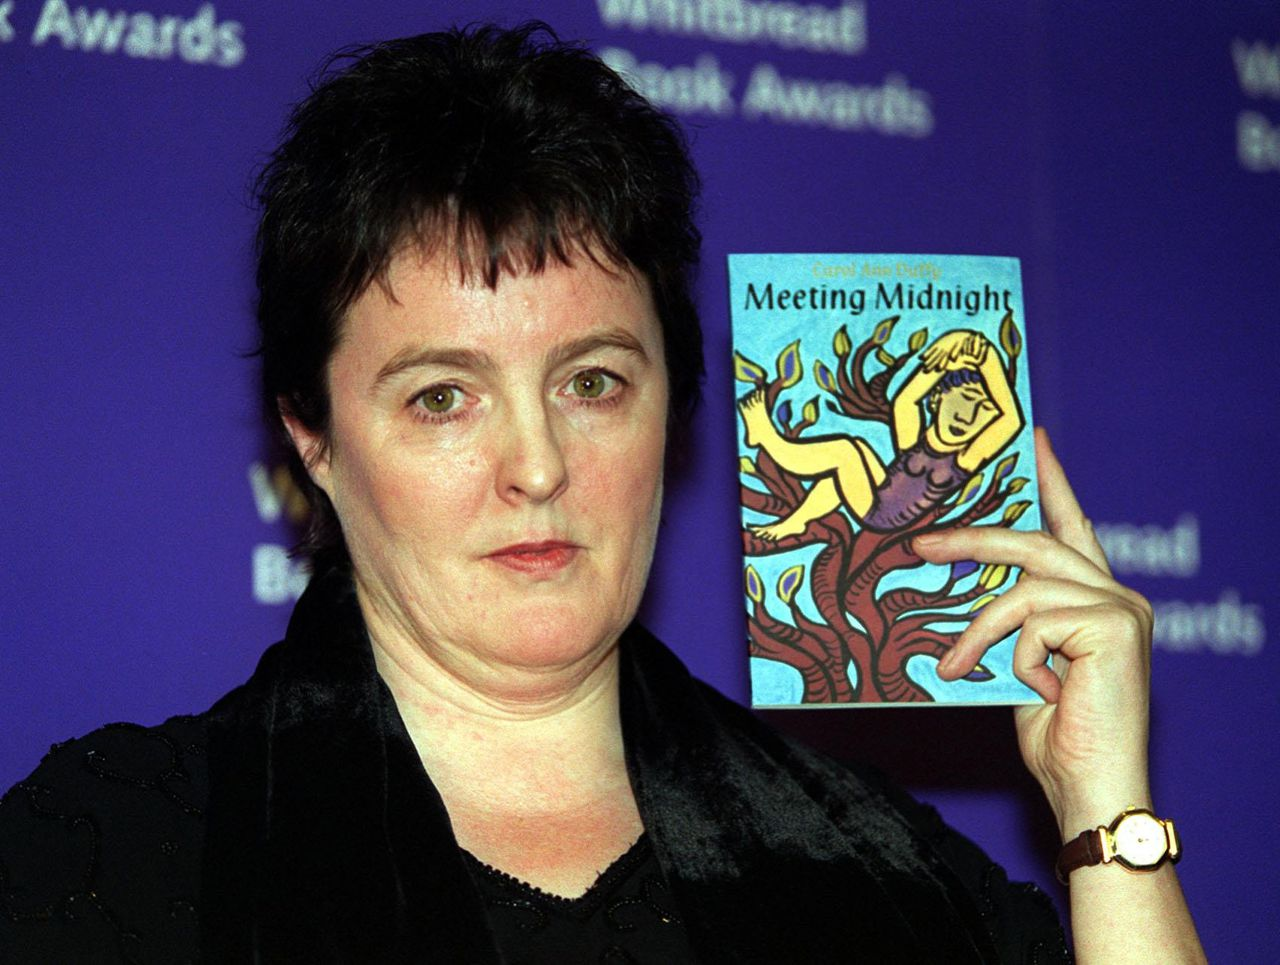 "Carol Ann Duffy (Foto AP) FILE - Poet and writer Carol Ann Duffy poses with her book 'Meeting Midnight', in this Jan. 25, 2000 file photo. Britain Friday May 1, 2009, awarded the role of national poet laureate to Duffy - the first woman to hold a post that has been filled by William Wordsworth, Alfred, Lord Tennyson and Ted Hughes. A witty and popular writer whose work is widely taught in British schools, Duffy is also the first openly gay laureate. Duffy said she had thought ""long and hard"" before accepting the job, which now has a 10-year term.(AP Photo/Michael Crabtree-pa, file) **UNITED KINGDOM OUT: NO SALES: NO ARCHIVE:"